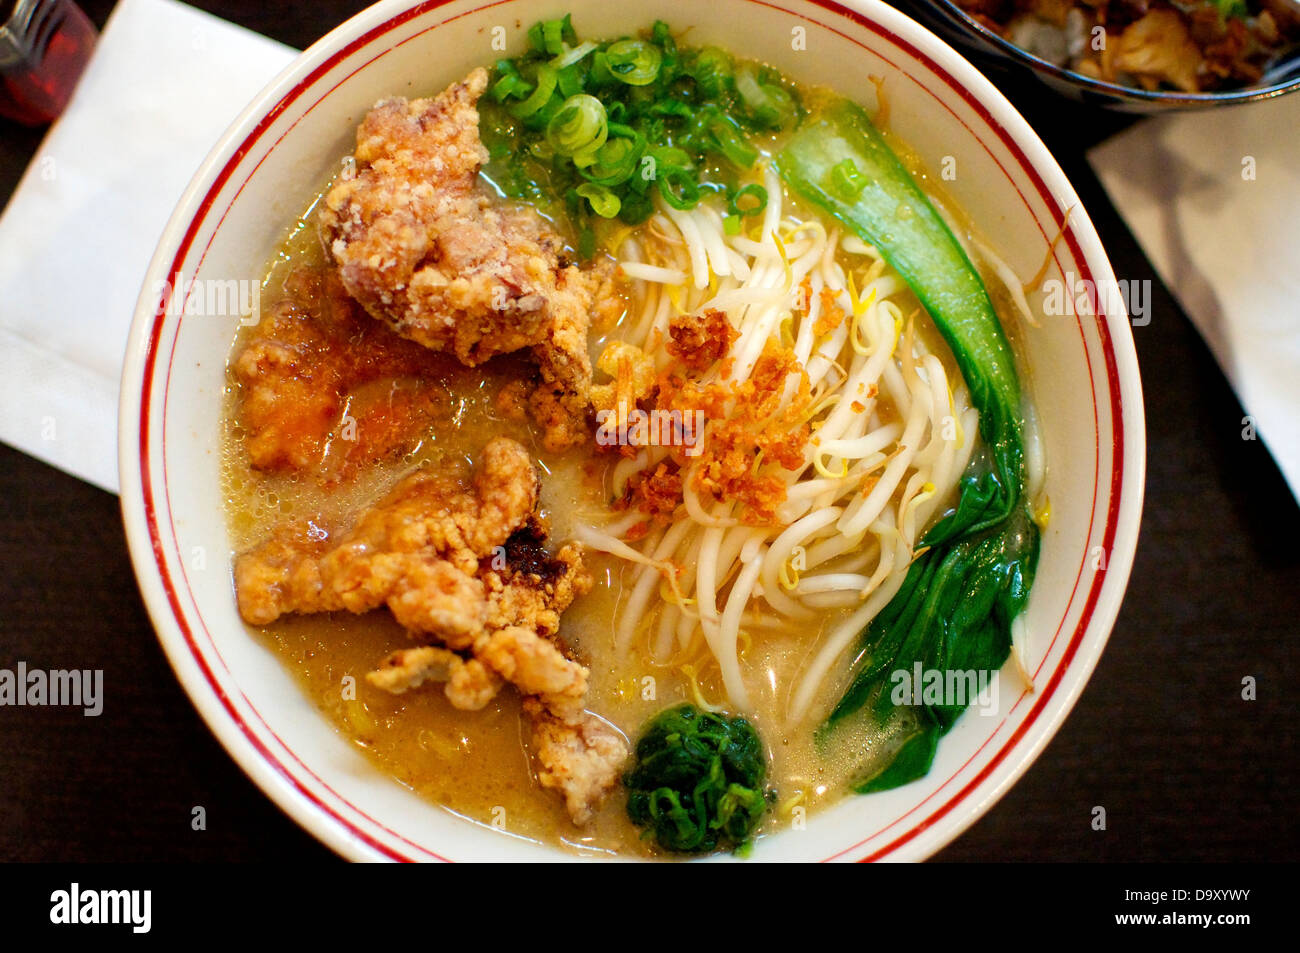 Large Bowl of Ramen Soup with Tempura in it. A typical Japanese Dish. - Stock Image